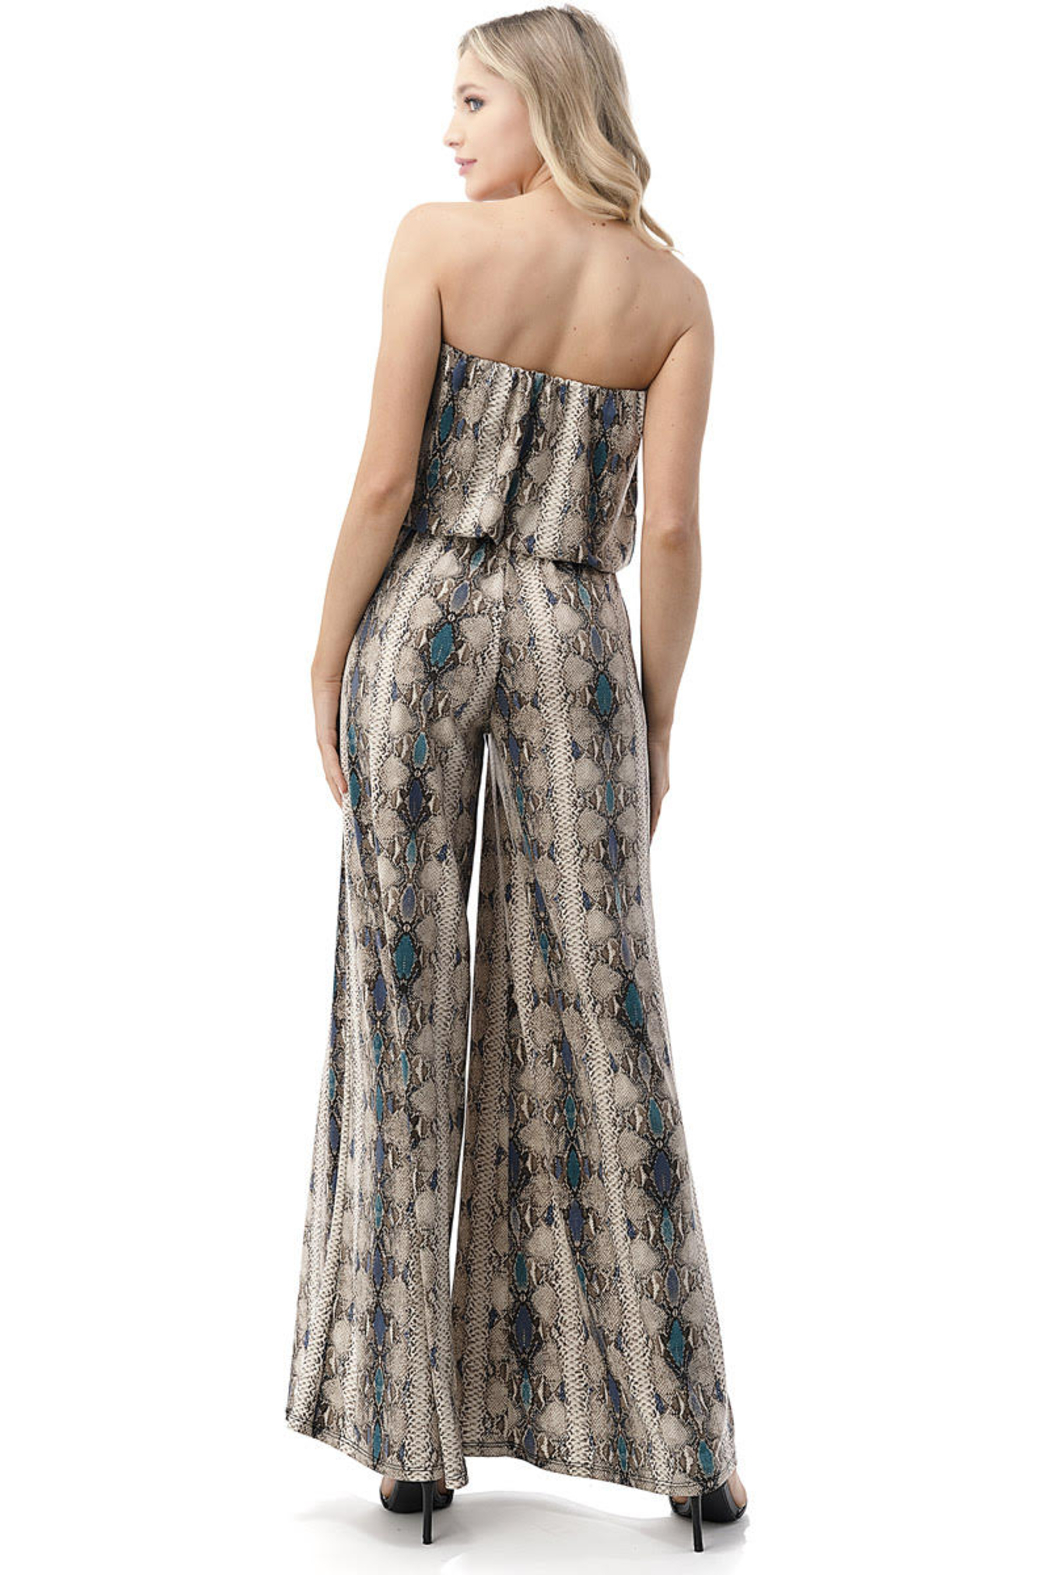 Ariella USA Strapless Reptile Print Jumpsuit w Rope Belt - Side Cropped Image